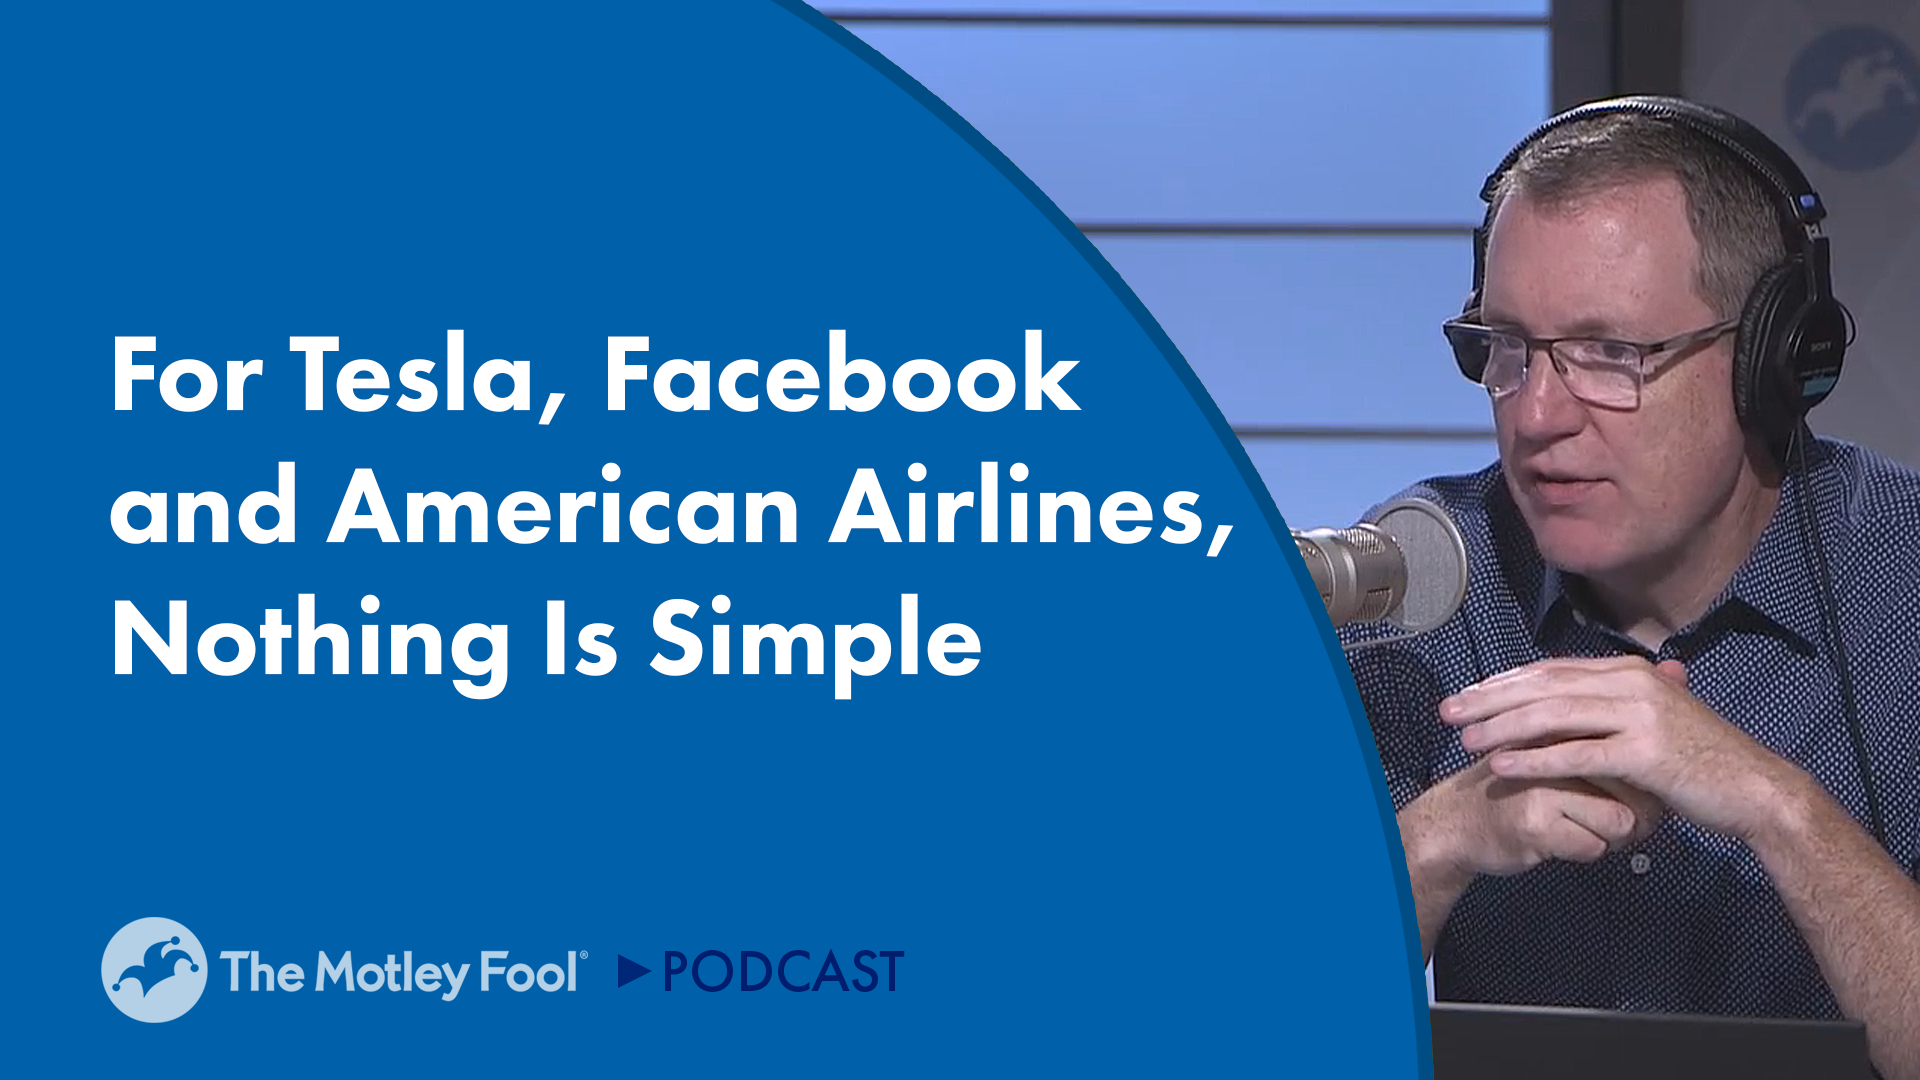 For Tesla, Facebook, and American Airlines, Nothing Is